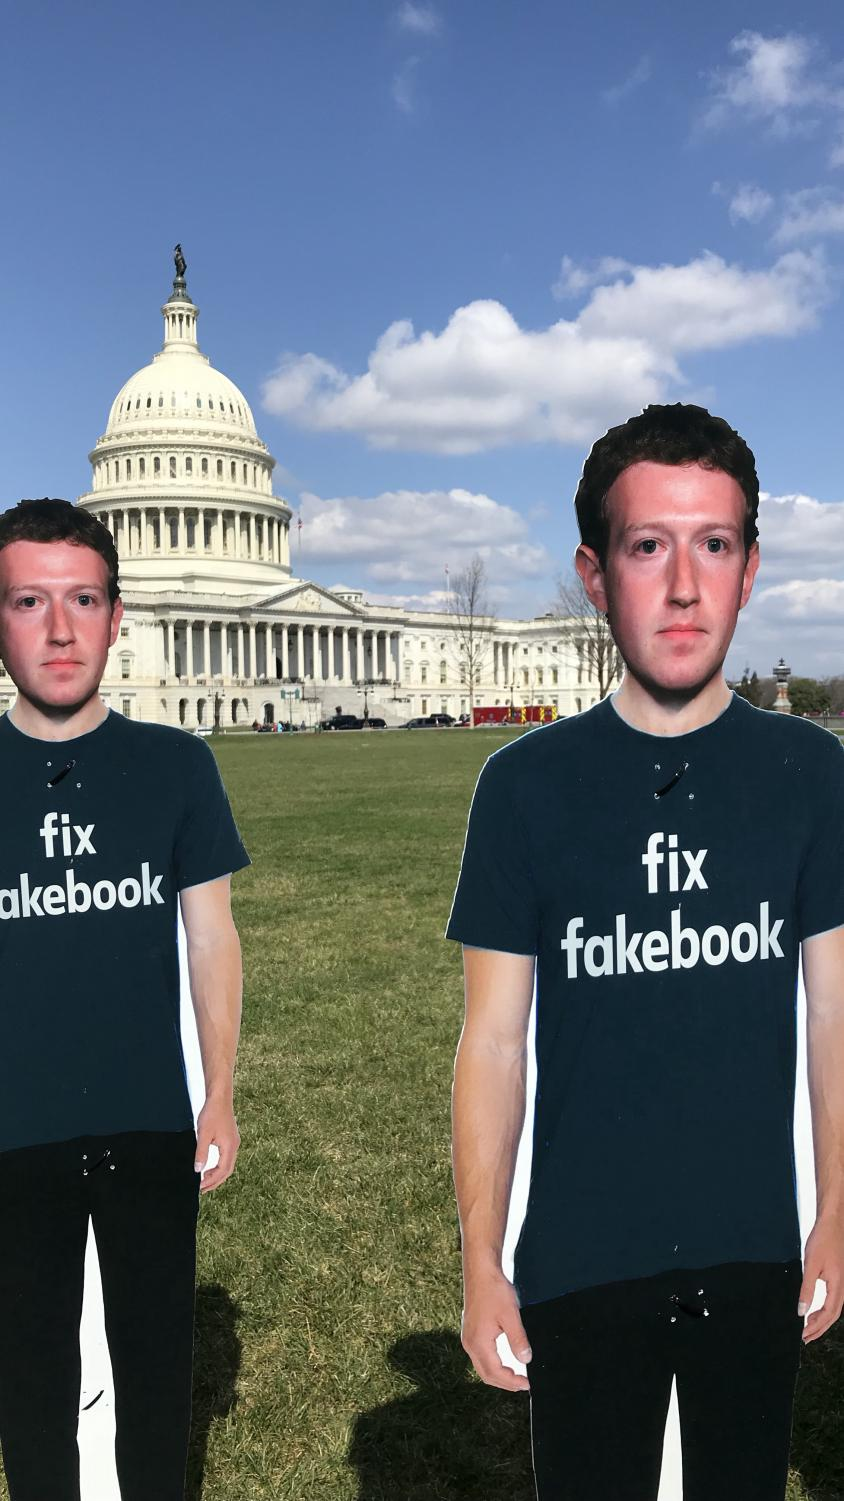 During the trial, these cardboard cutouts of Zuckerberg were placed on the lawn of the Capitol.